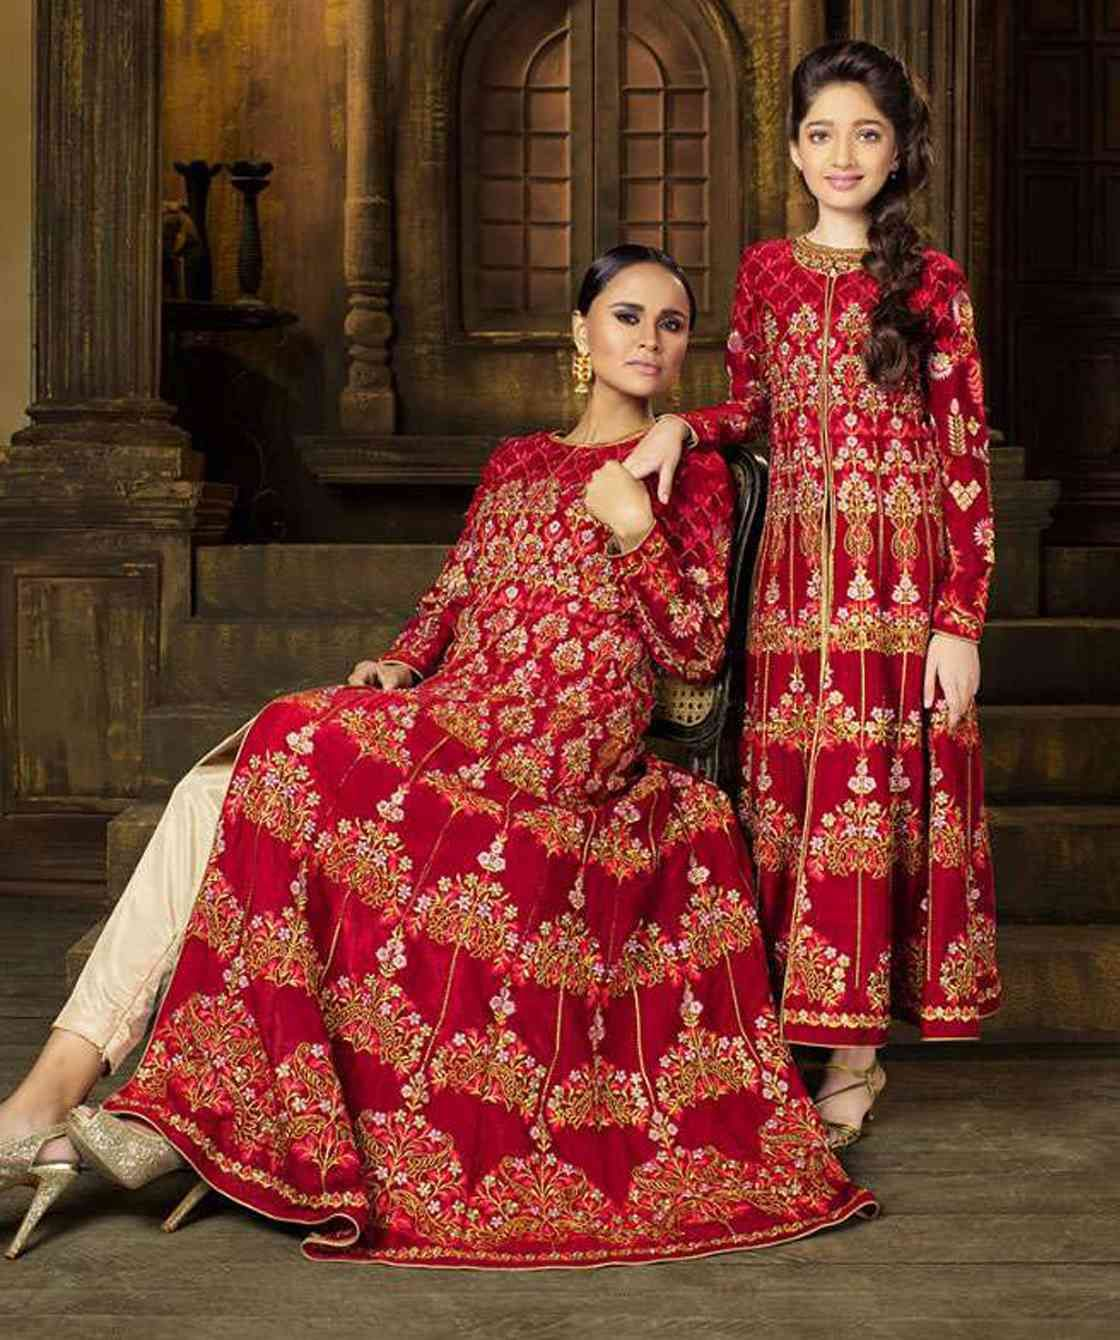 2e3840c0ff435 Buy Mother daughter dress combo for partywear occassion at wholesale in  surat